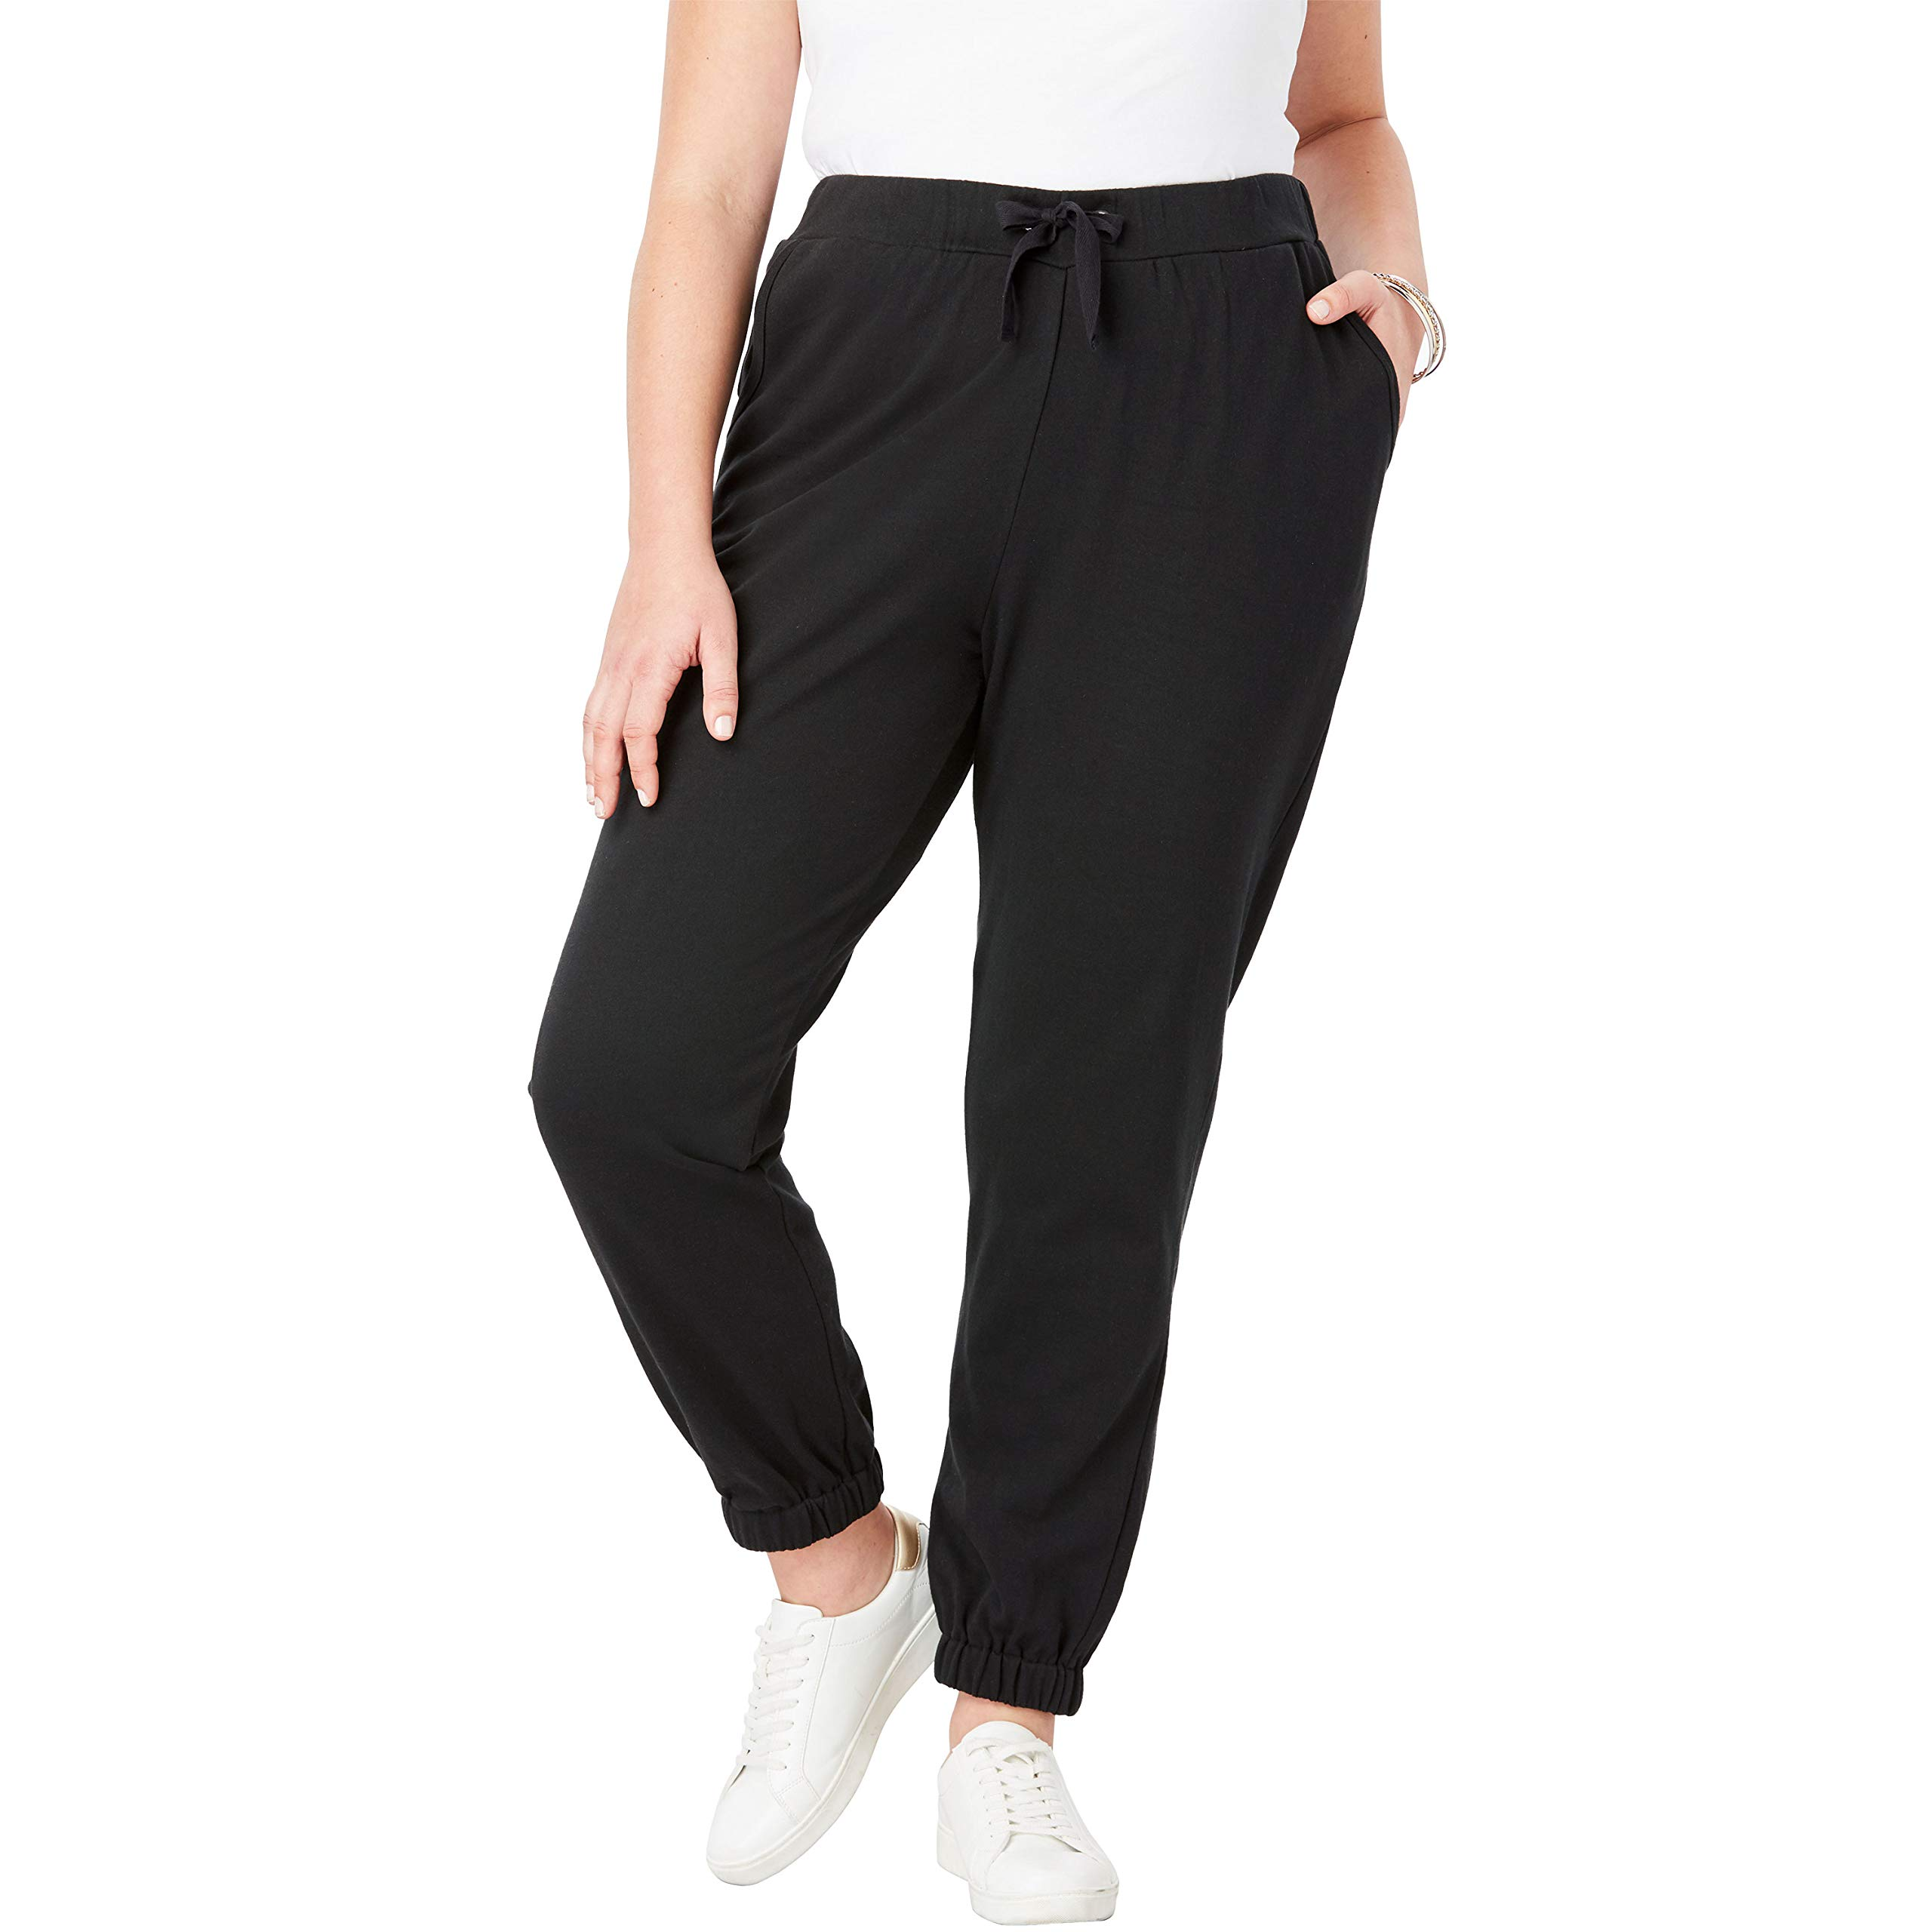 Roamans Women's Plus Size French Terry Jogger - Black, 18/20 by Roamans